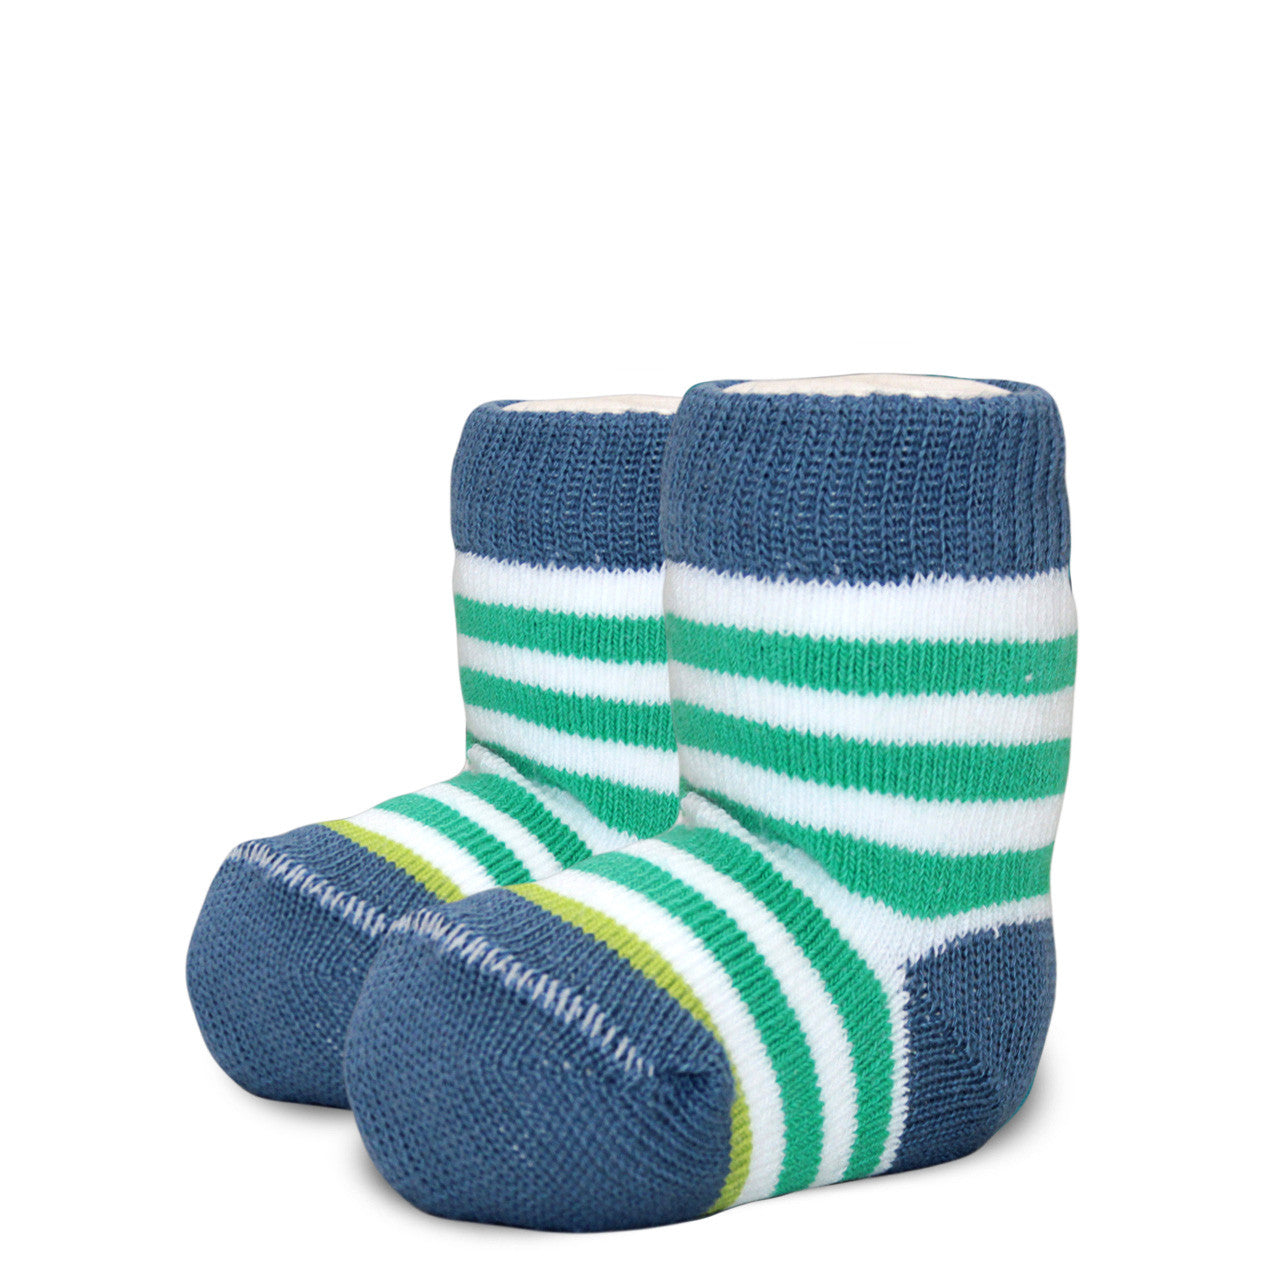 019f5e81f Mitscoots Outfitters - Courageous Mix Baby Socks 3 Pack